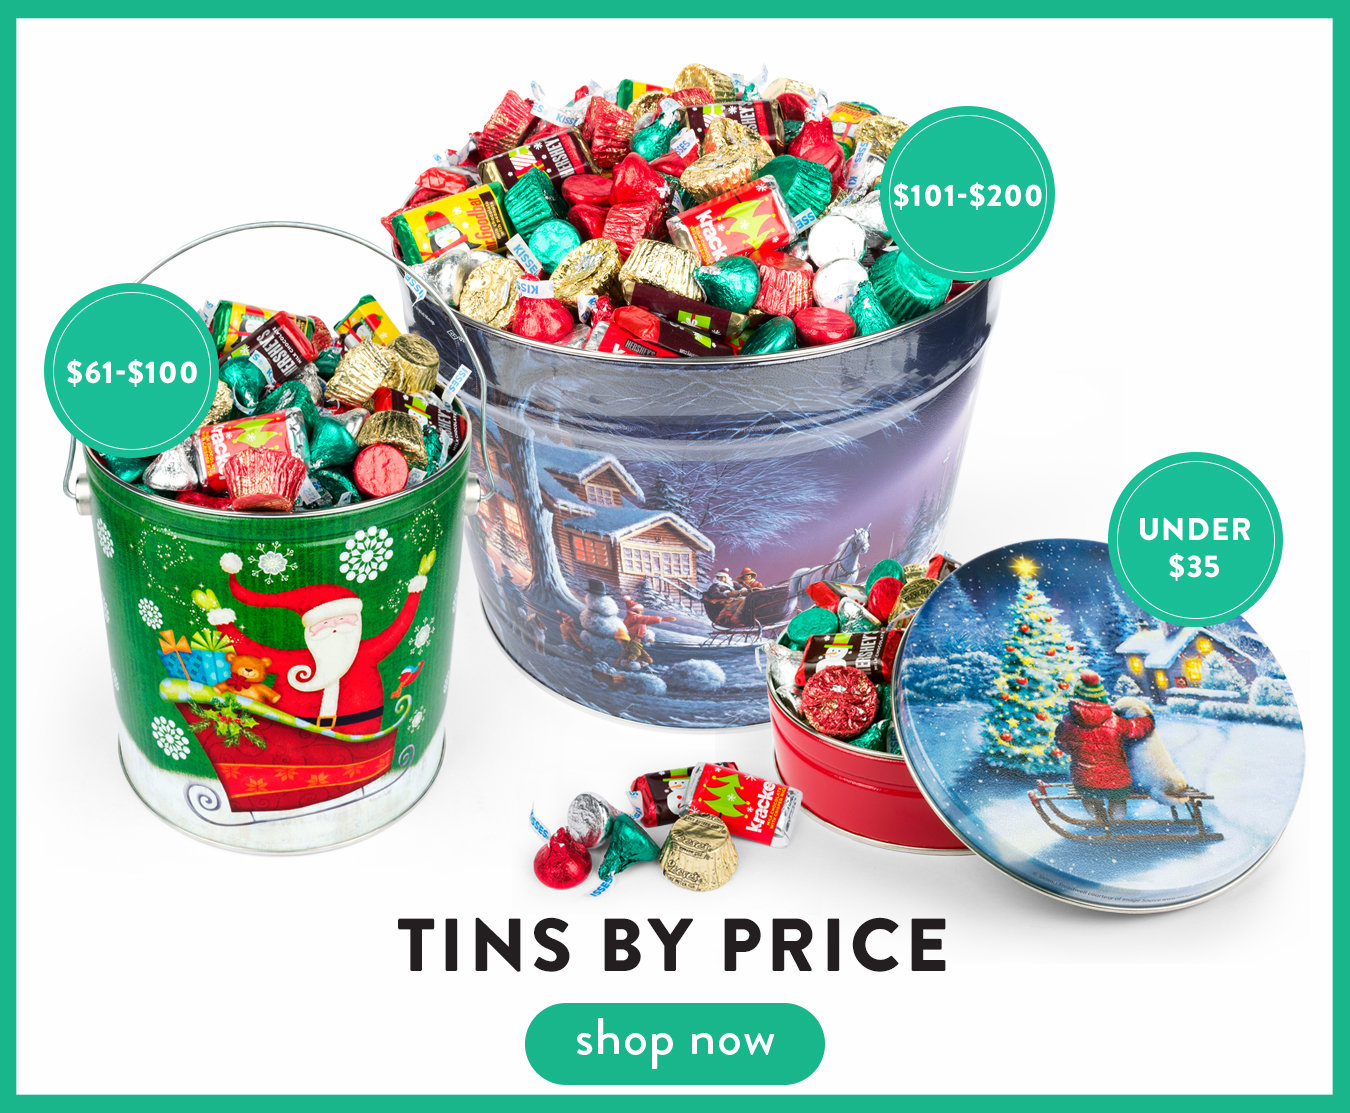 Shop Tins By Price